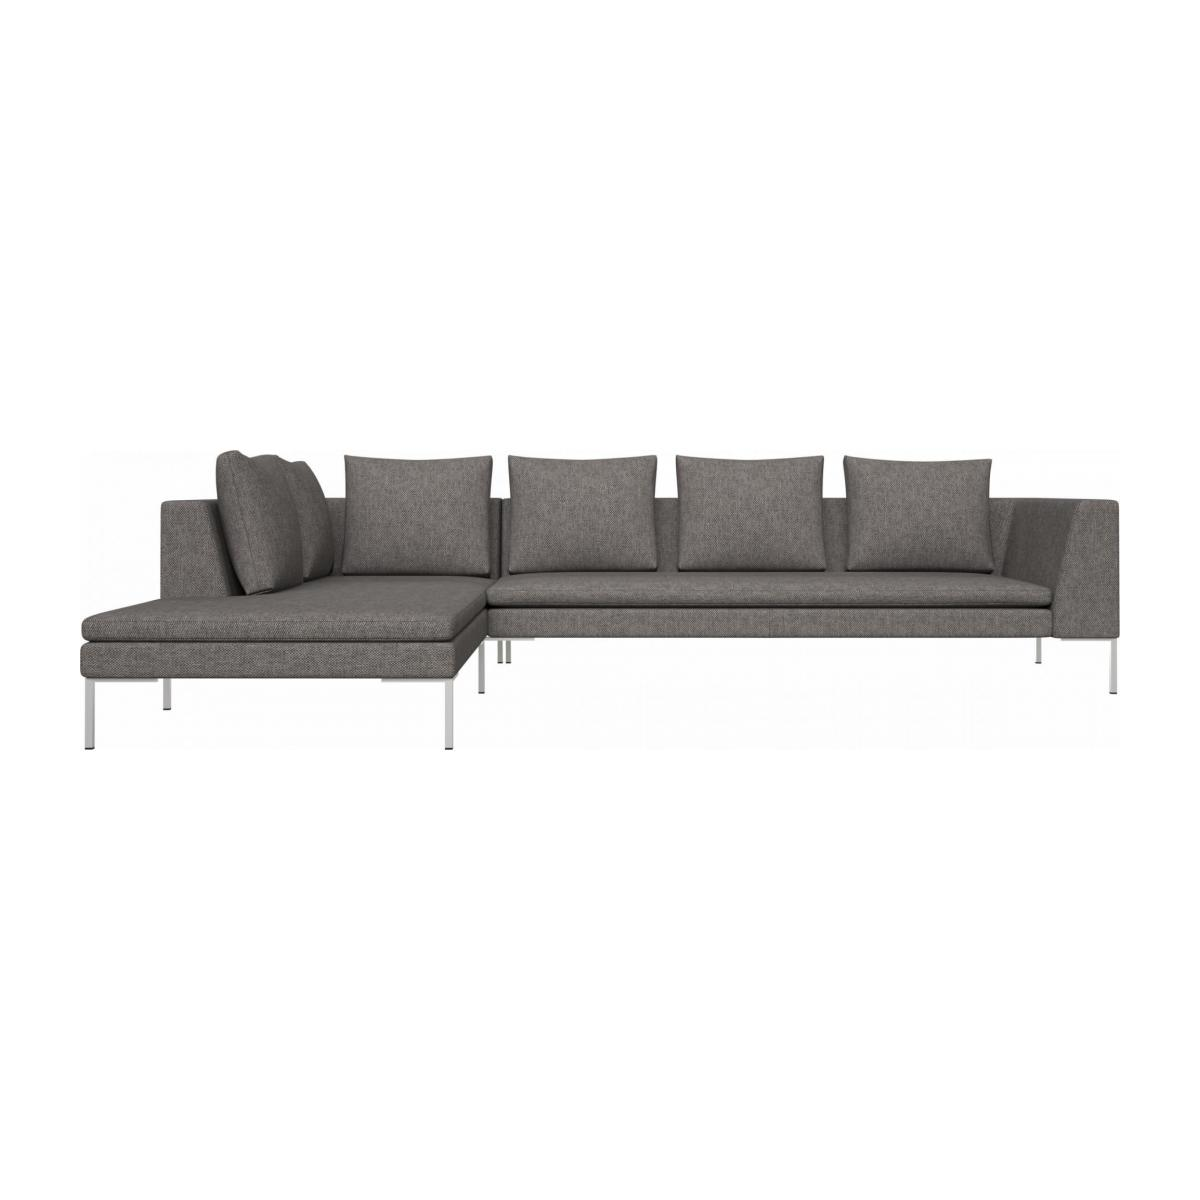 3 seater sofa with chaise longue on the left in Bellagio fabric, night black  n°1